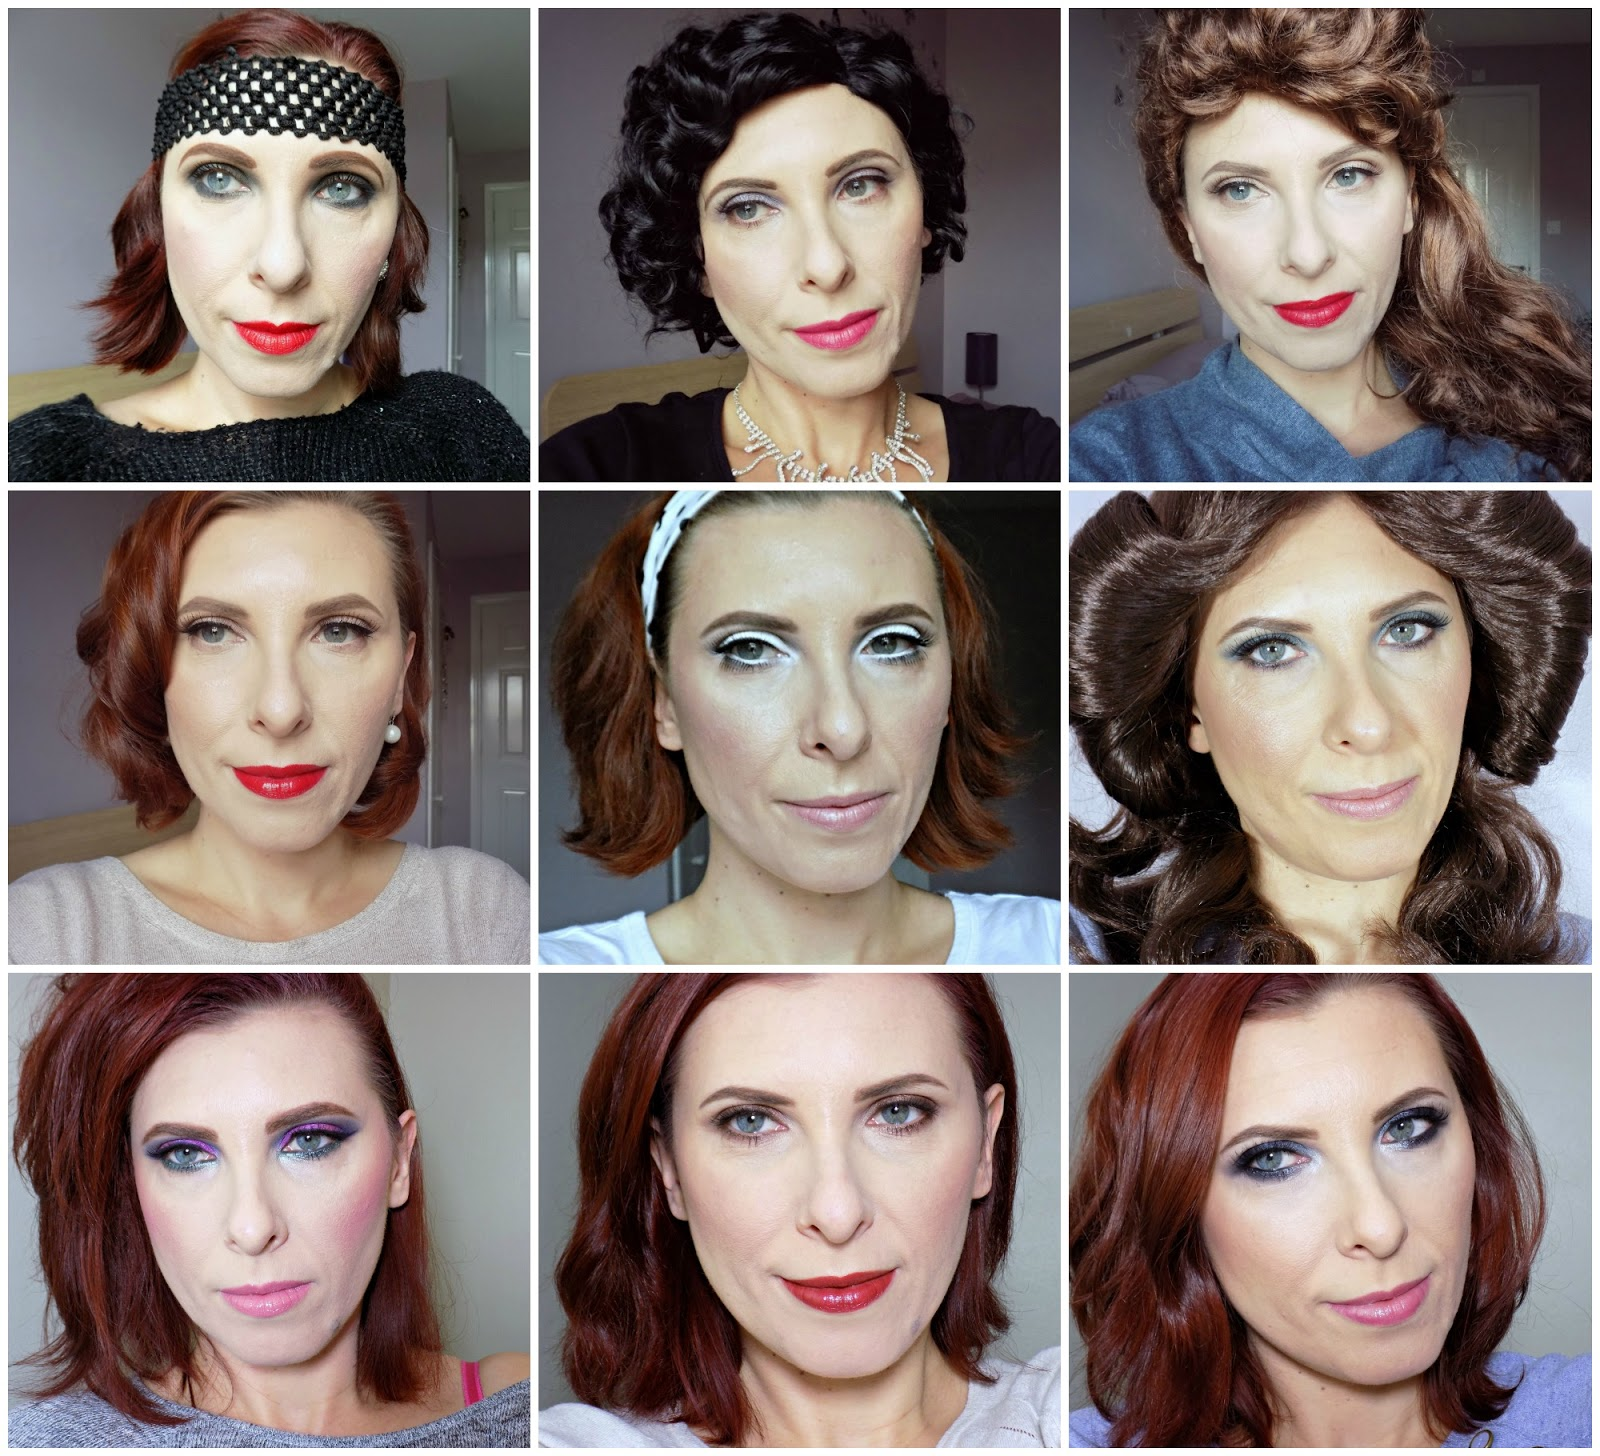 Makeup through the decades